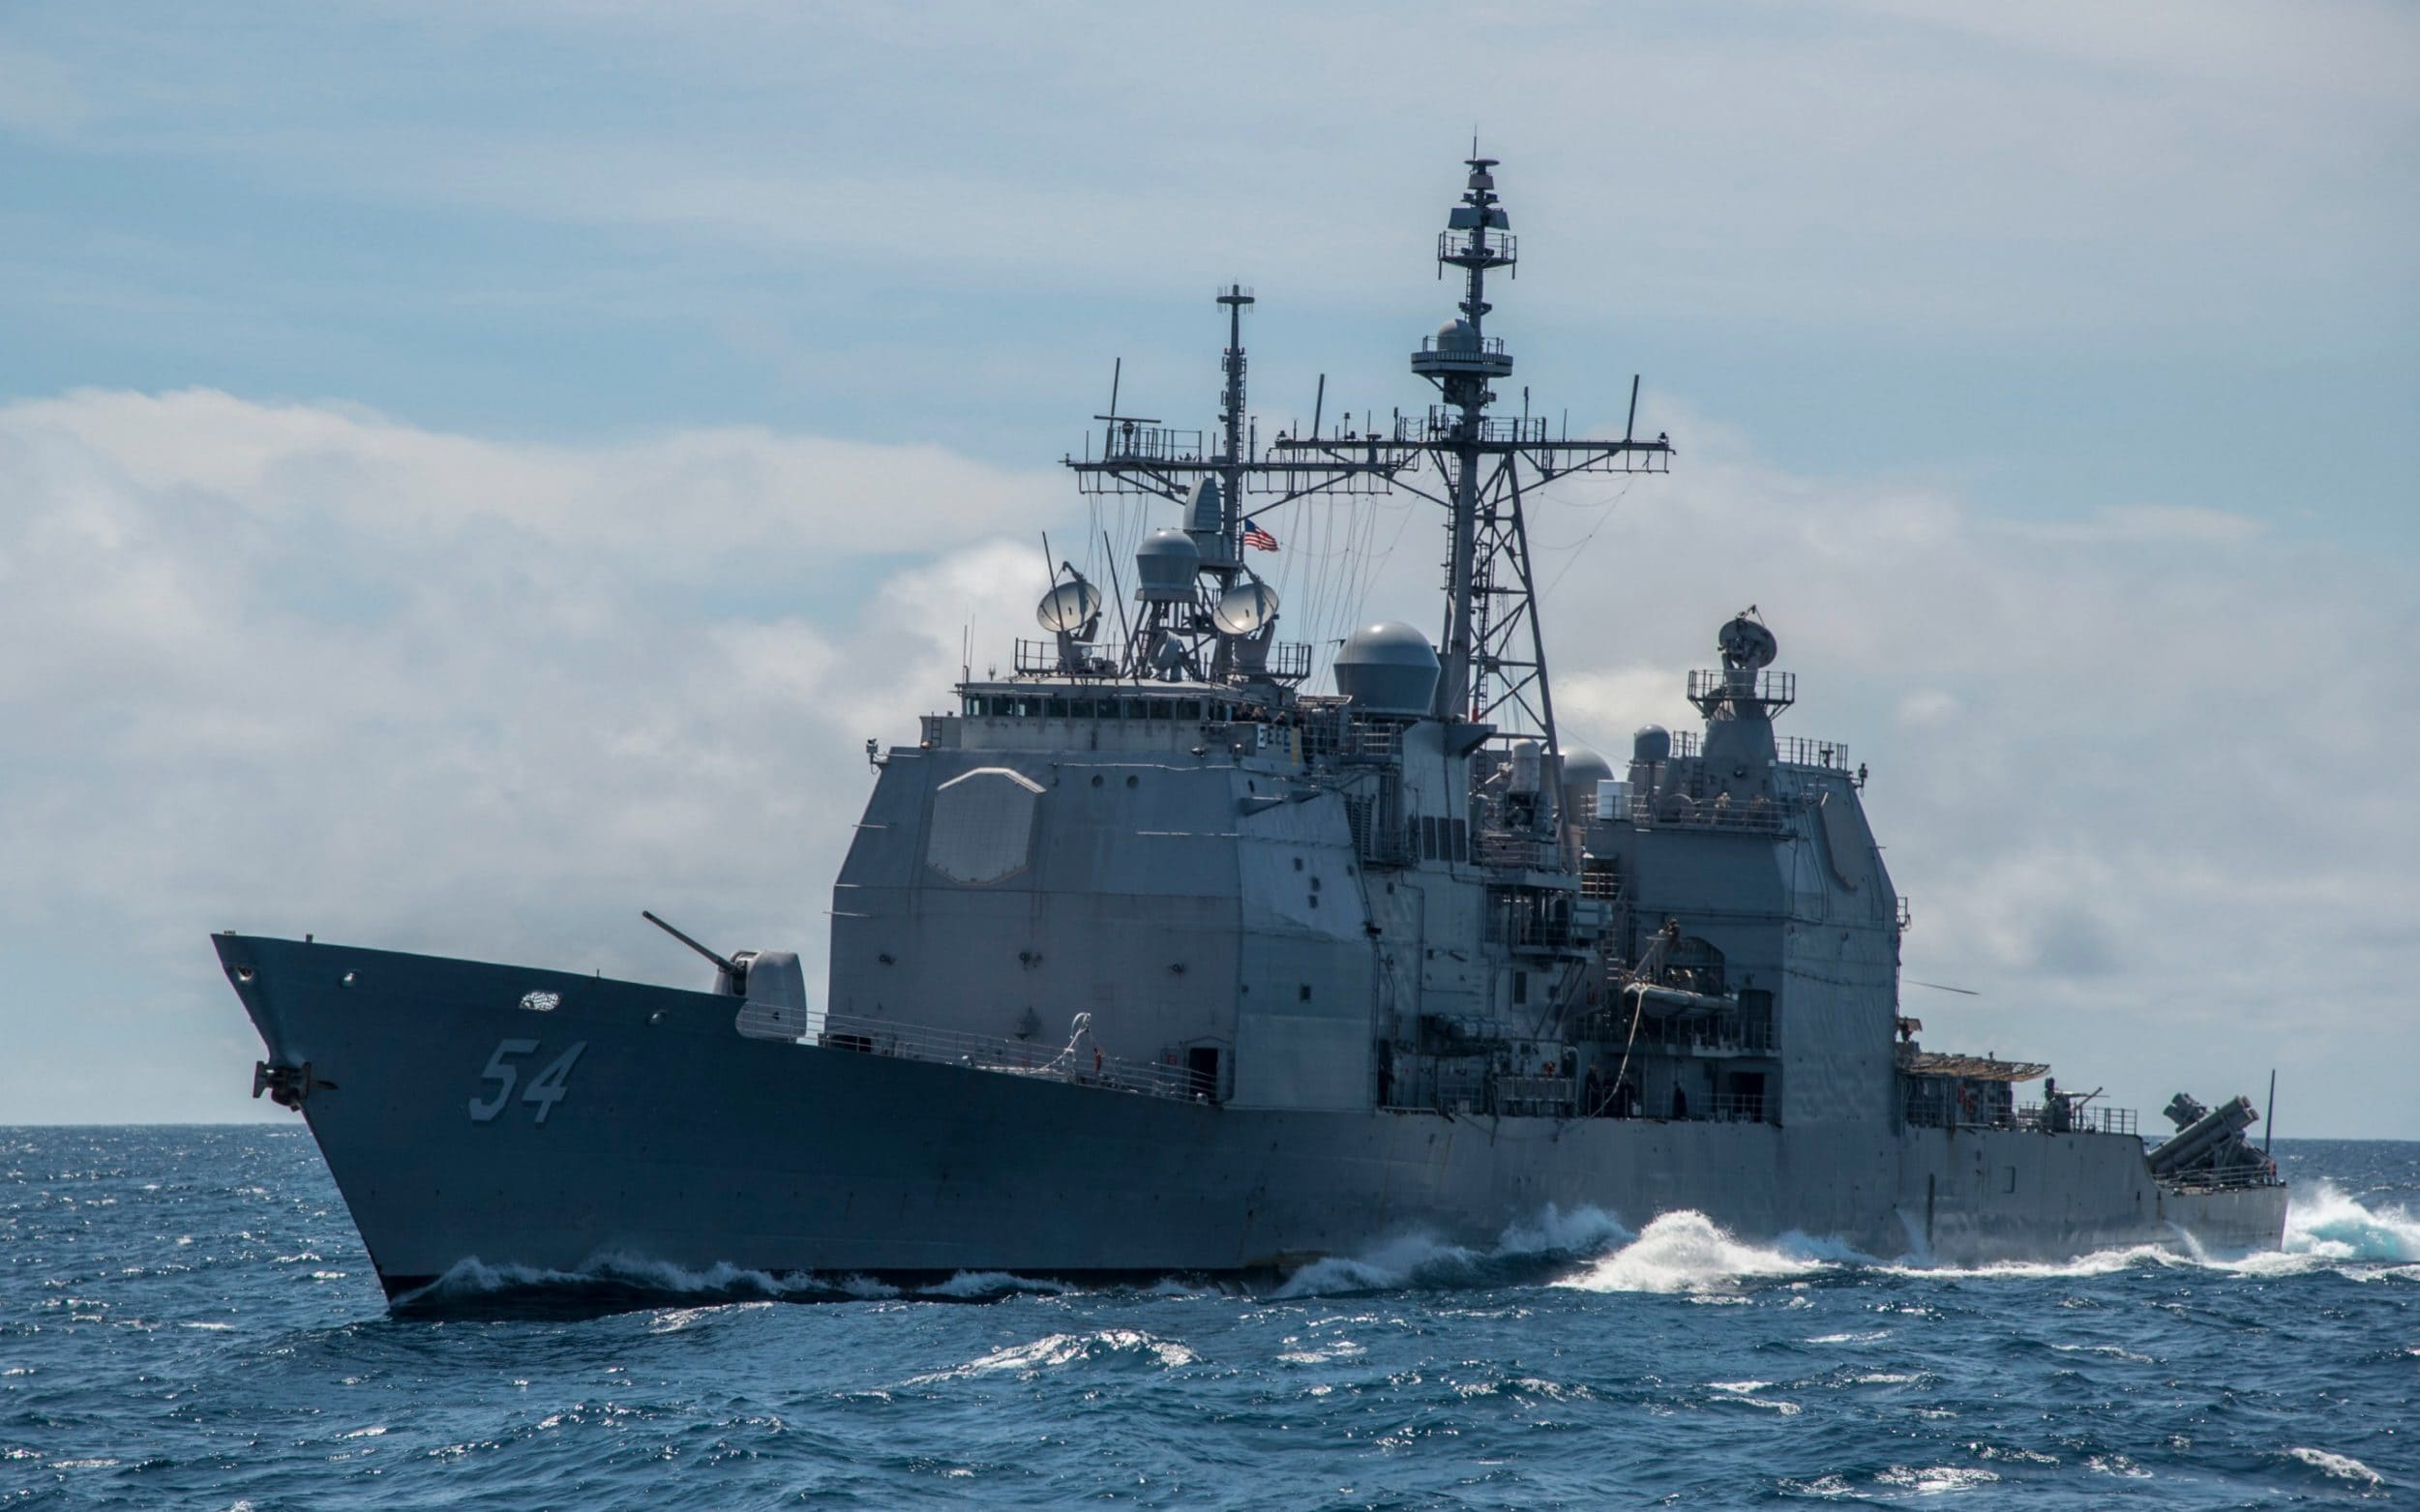 US ship sails through Taiwan Strait after threat of force from China against independence